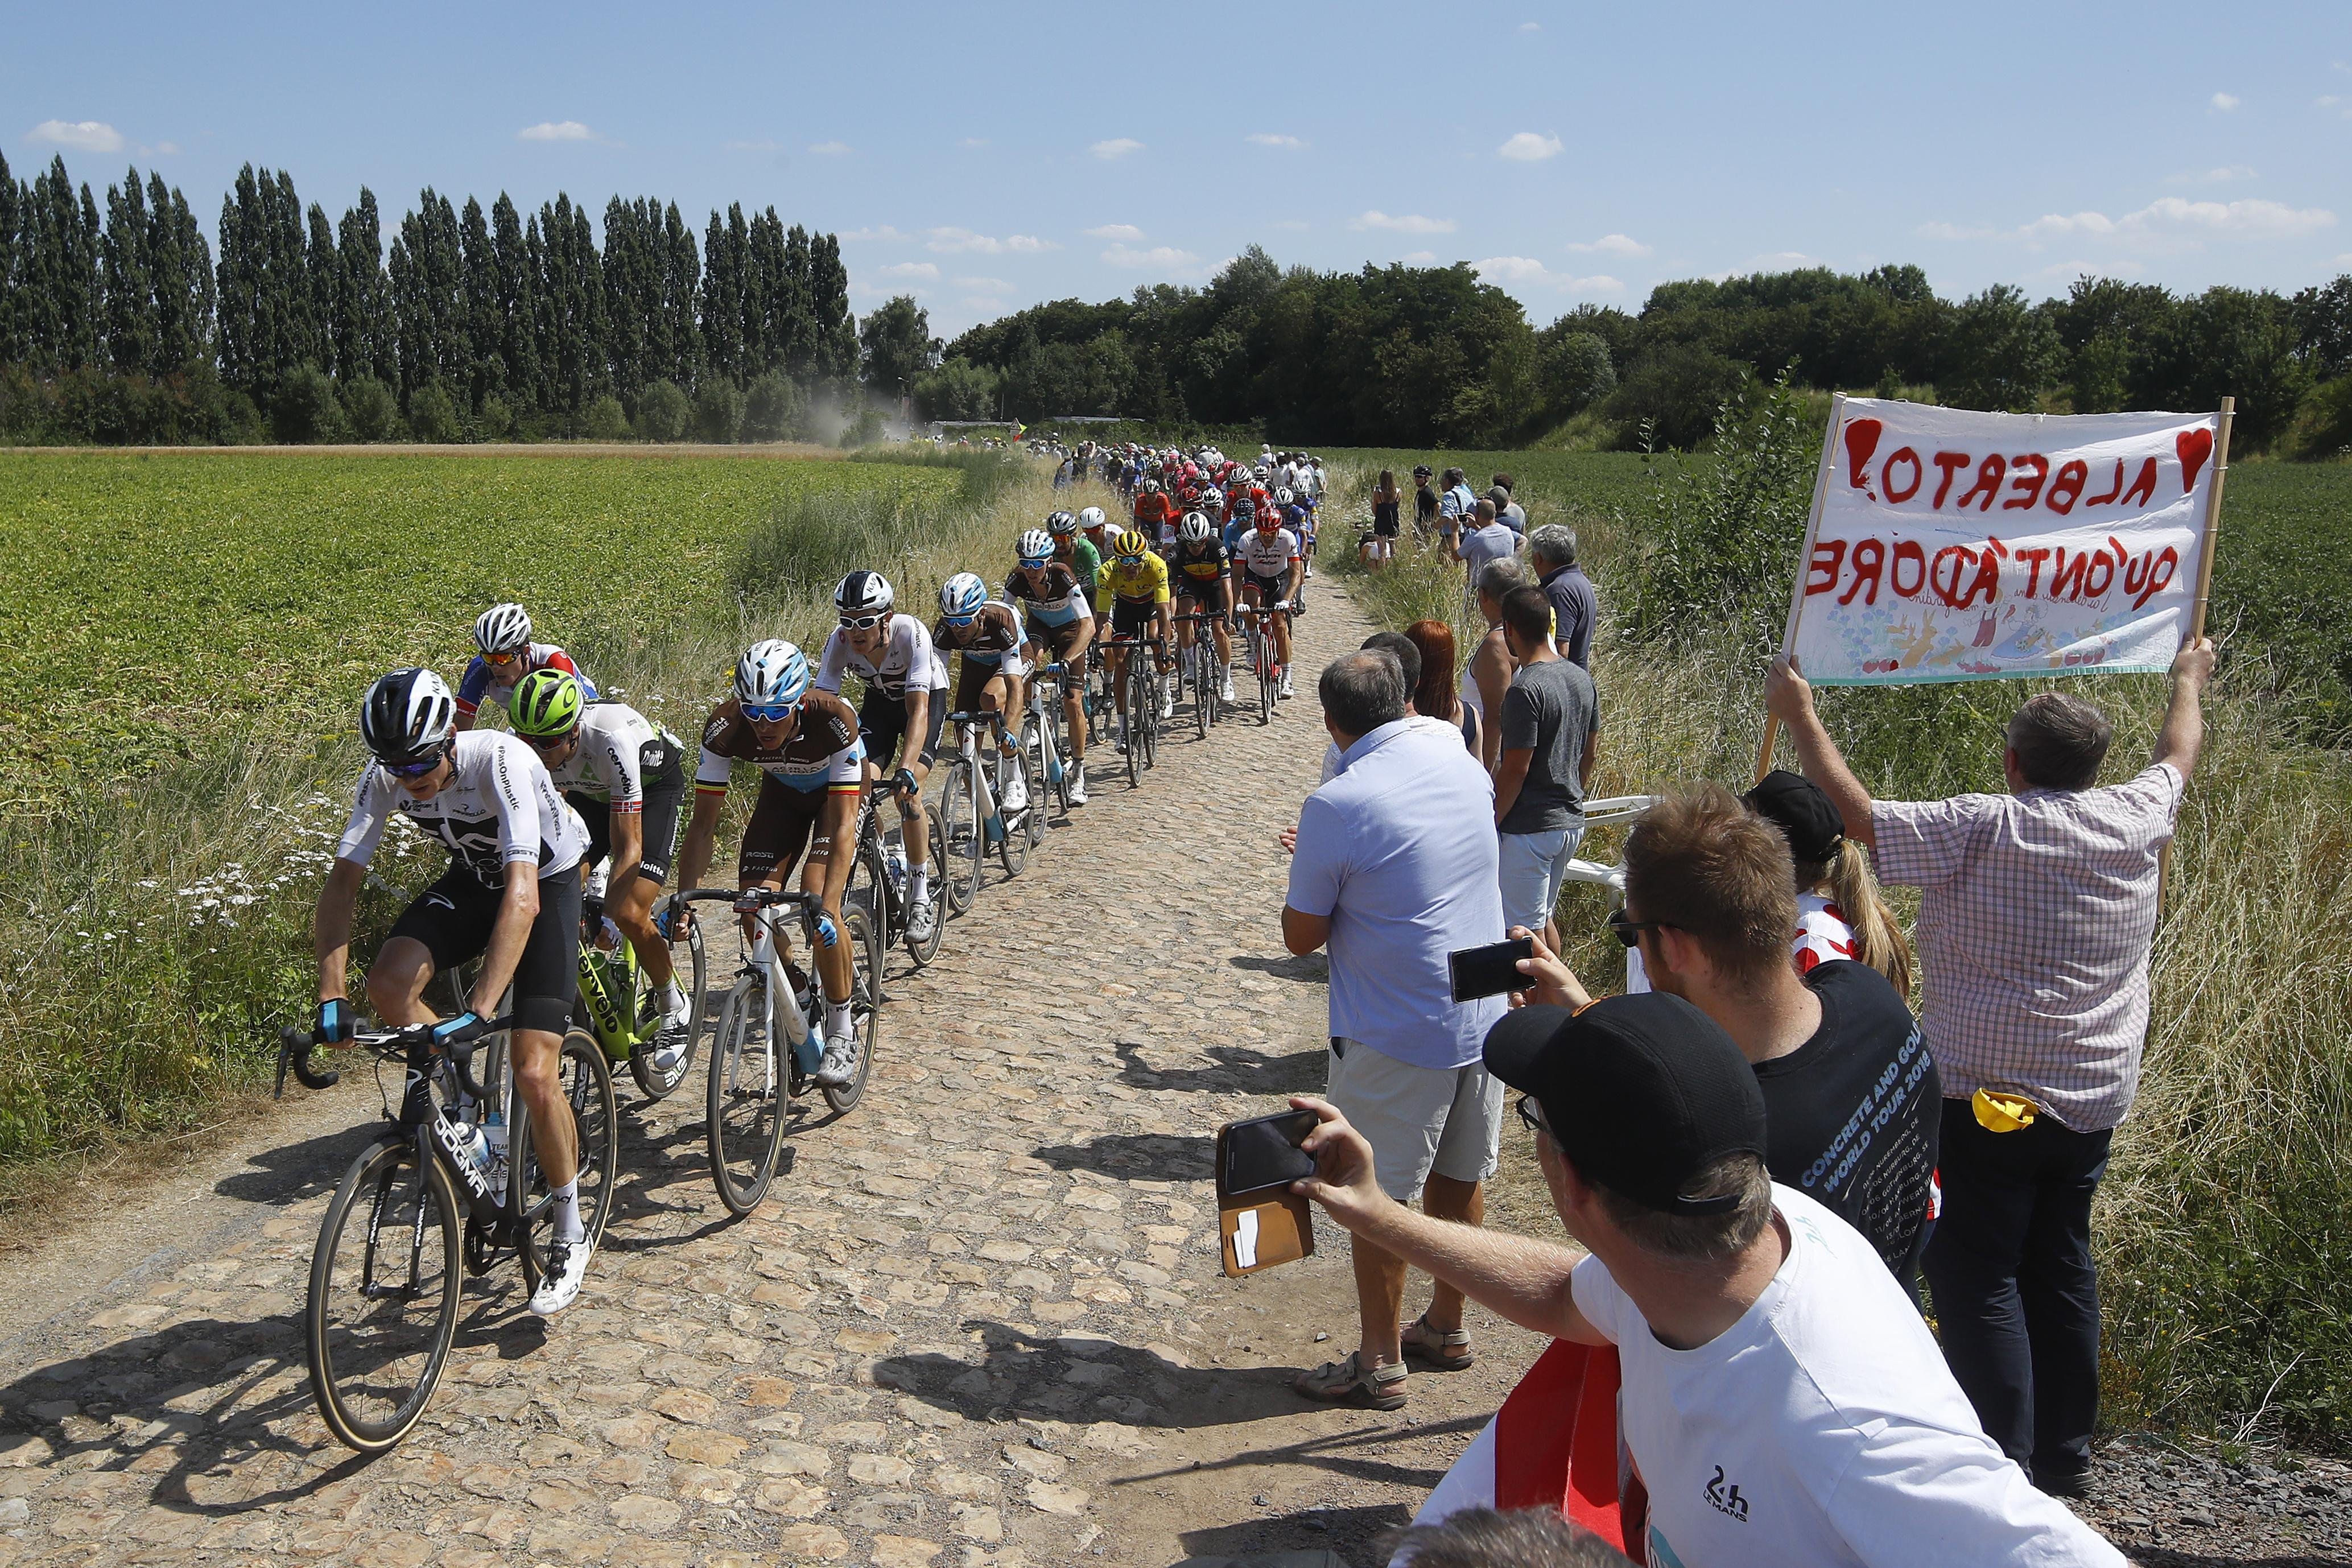 Stage 9 involves several tricky cobbled sections